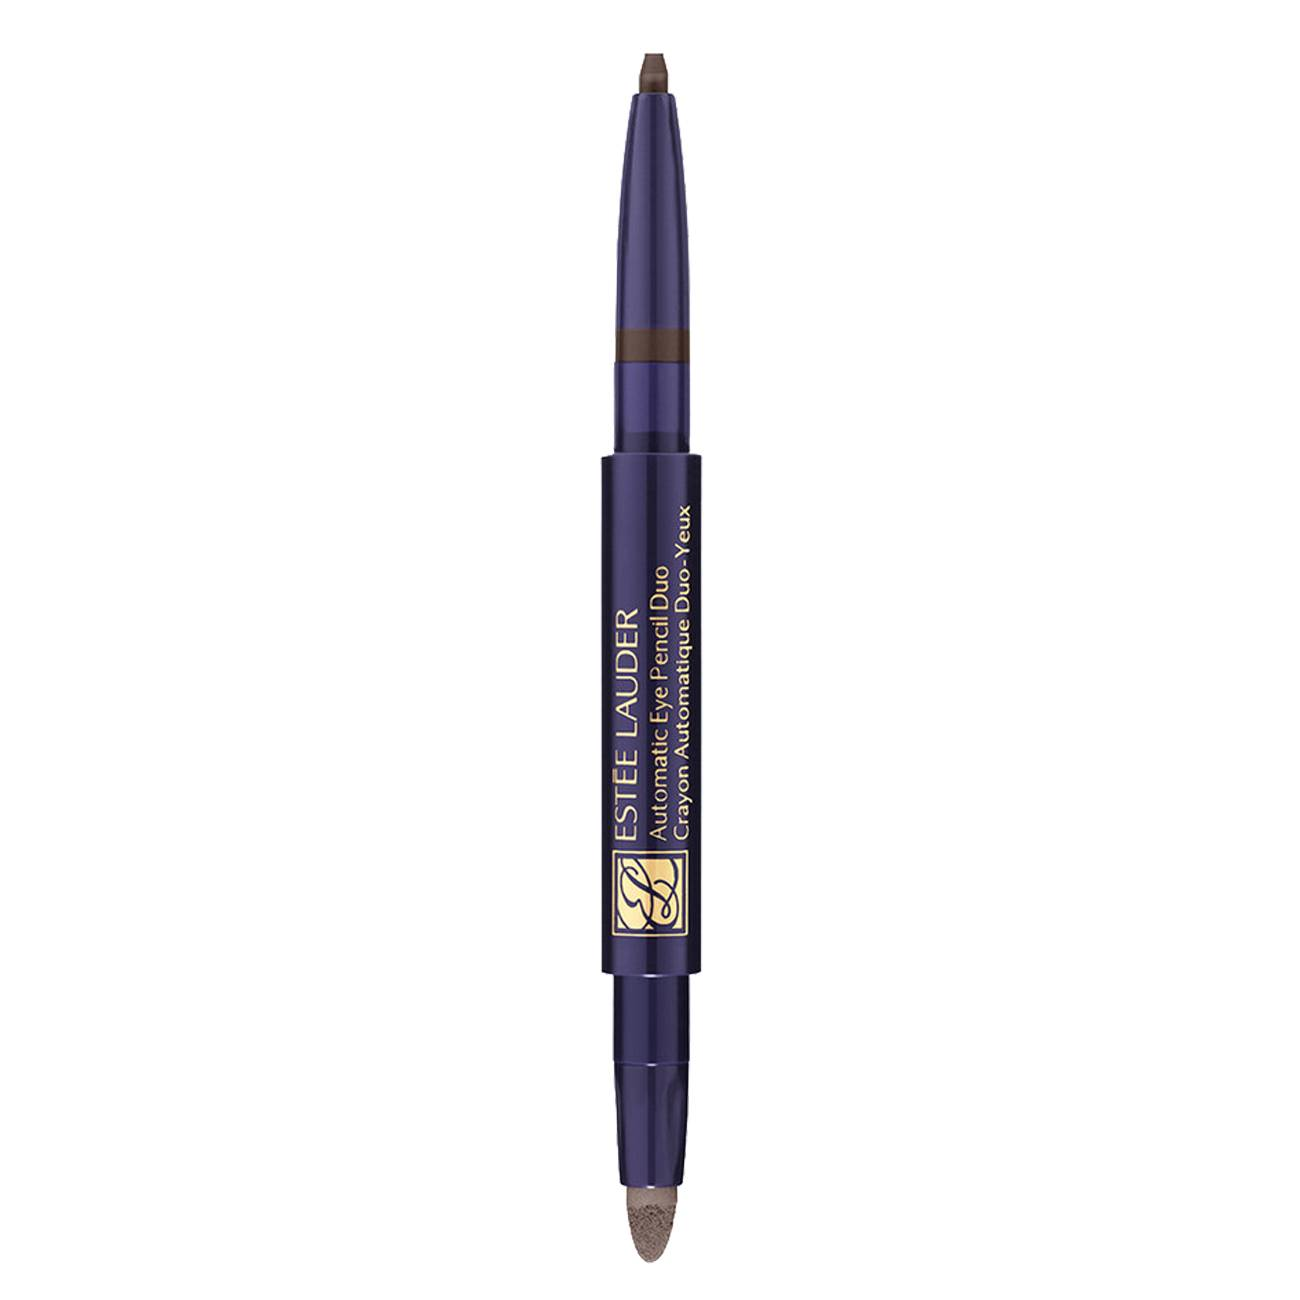 Automatic Eye Pencil Duo Estée Lauder imagine 2021 bestvalue.eu